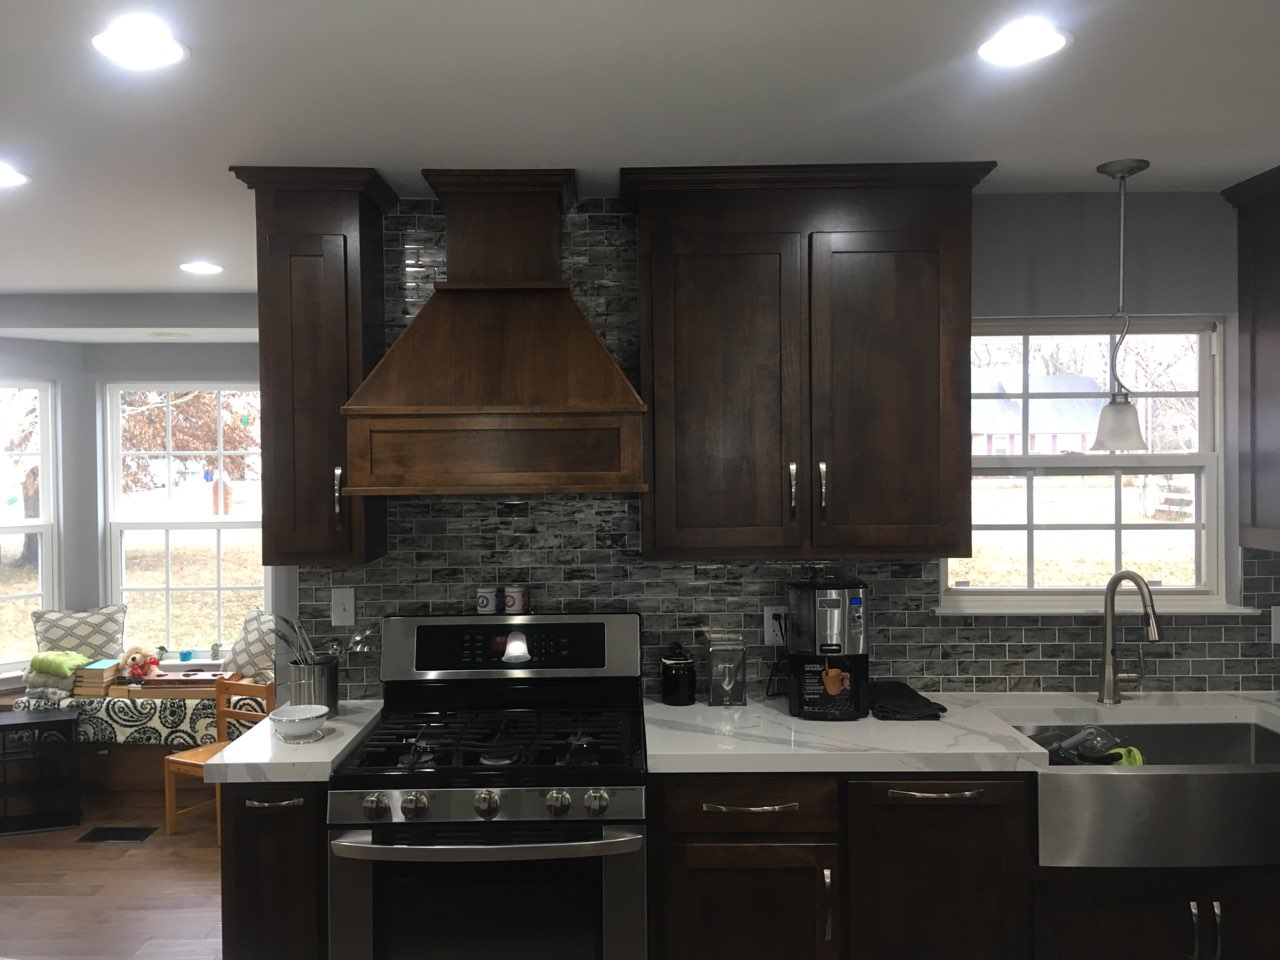 kitchen-remodel-nashville-tn-after6 – Warren Construction